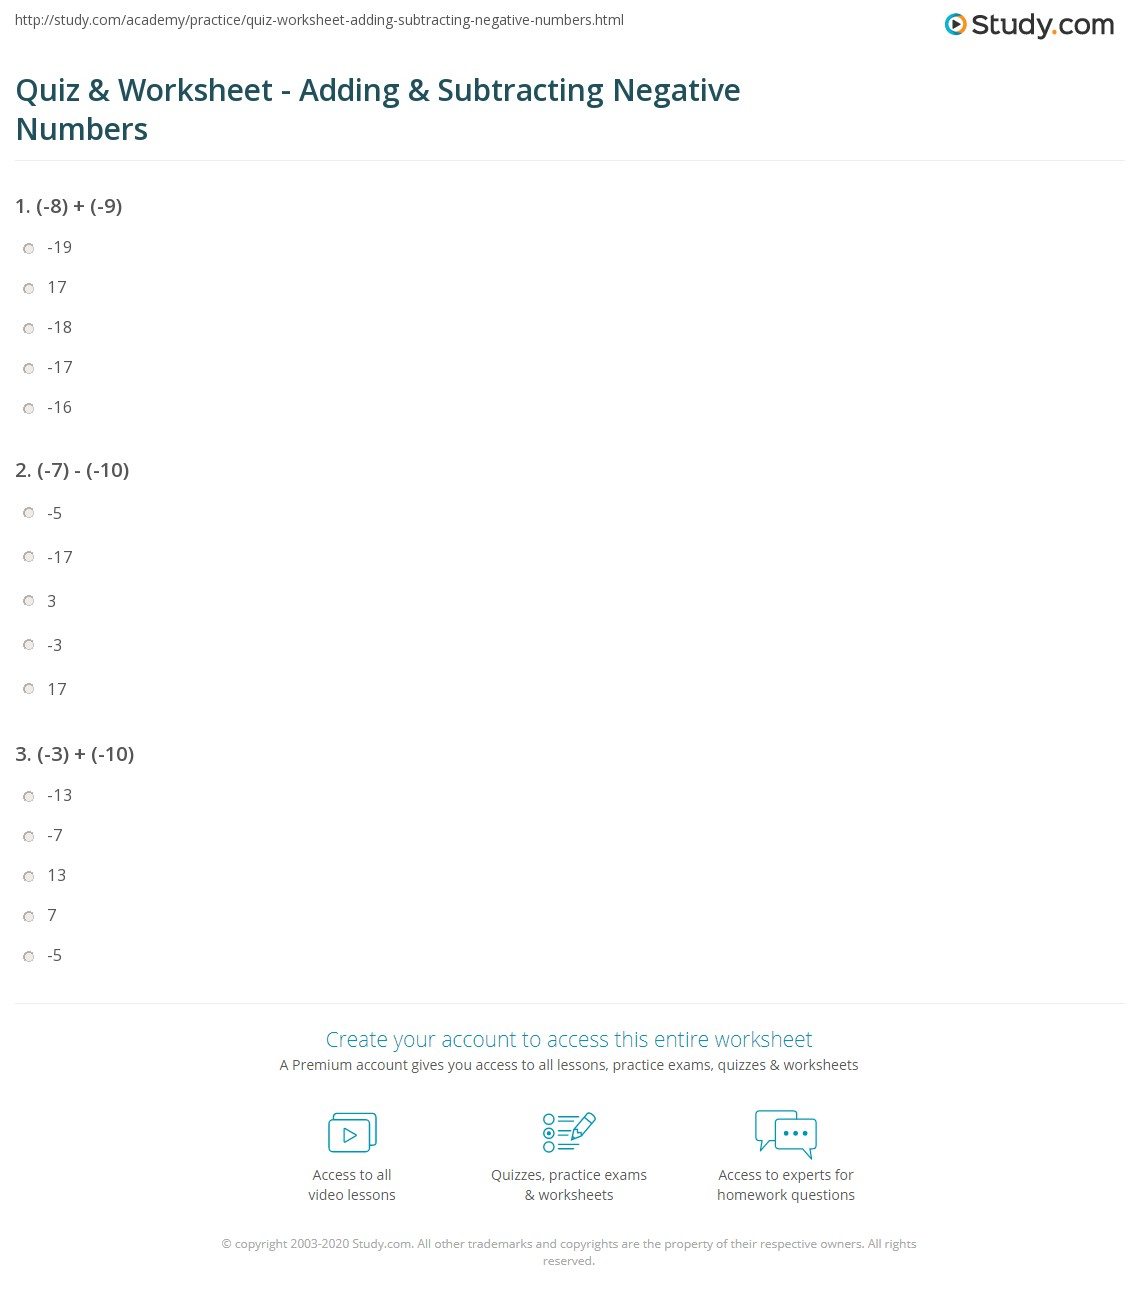 print adding subtracting negative numbers worksheet - Adding And Subtracting Negative Numbers Worksheet